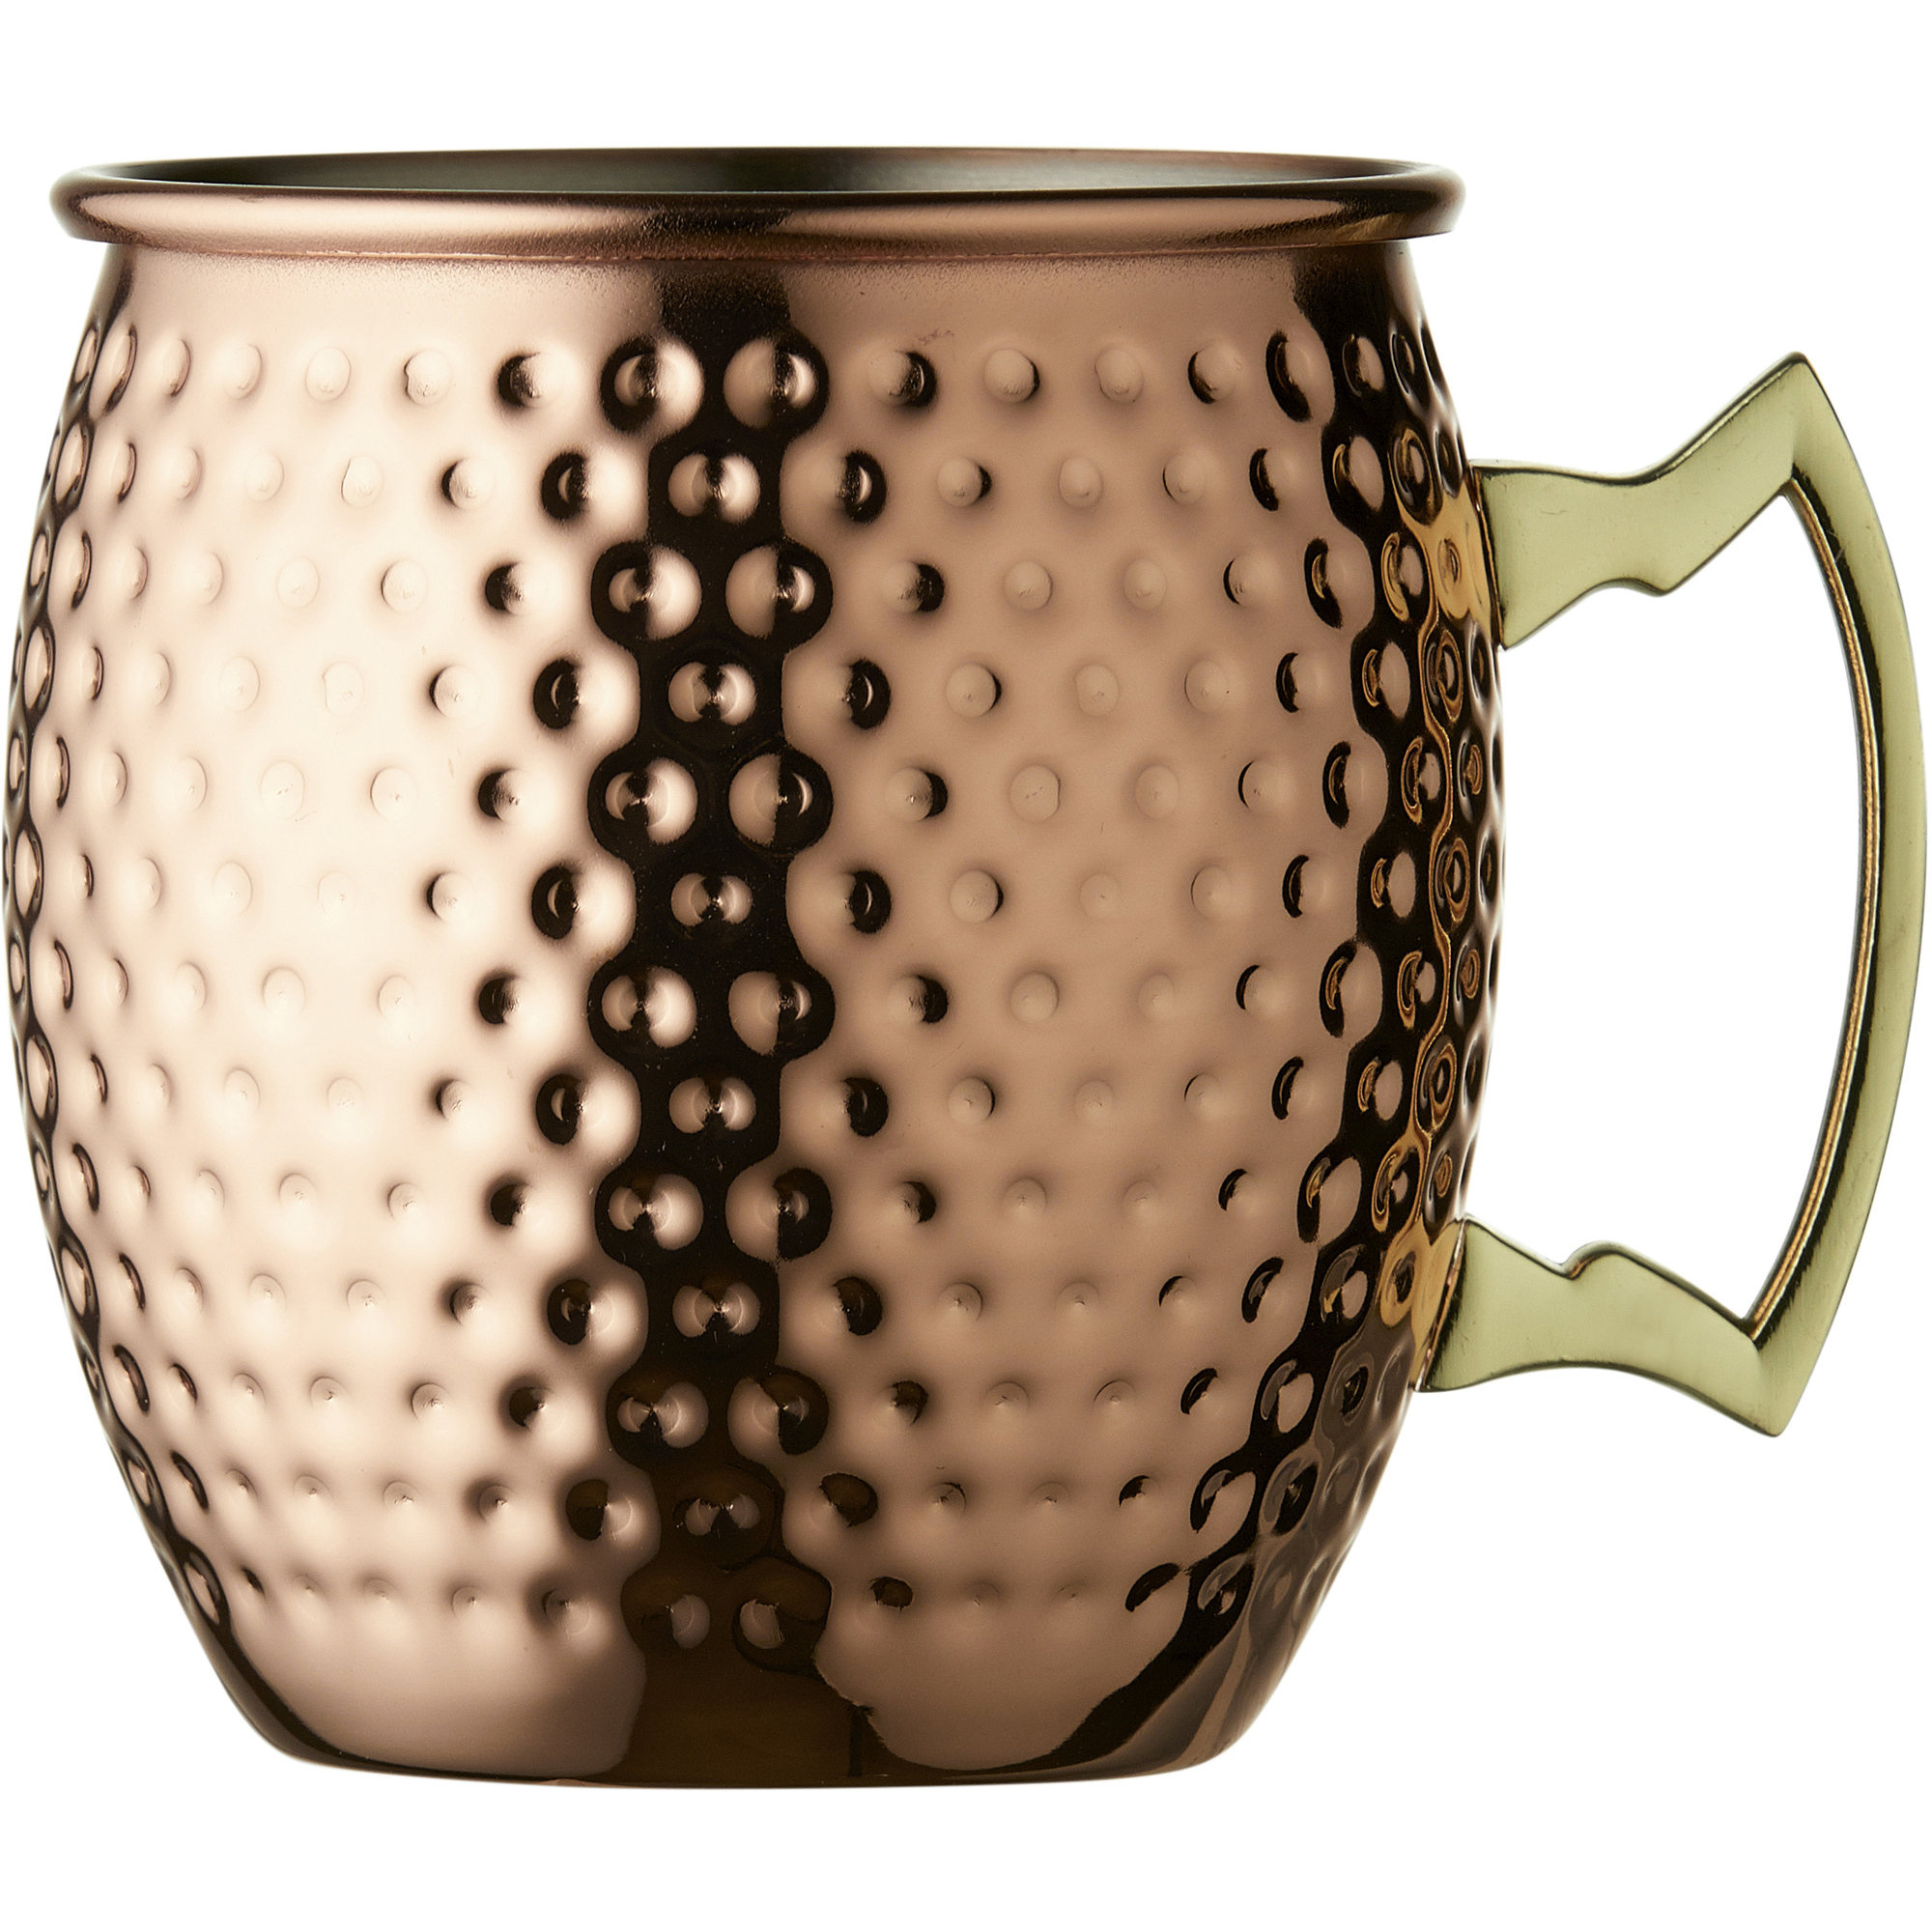 Lyngby Glas Moscow Mule Mugg 2 st